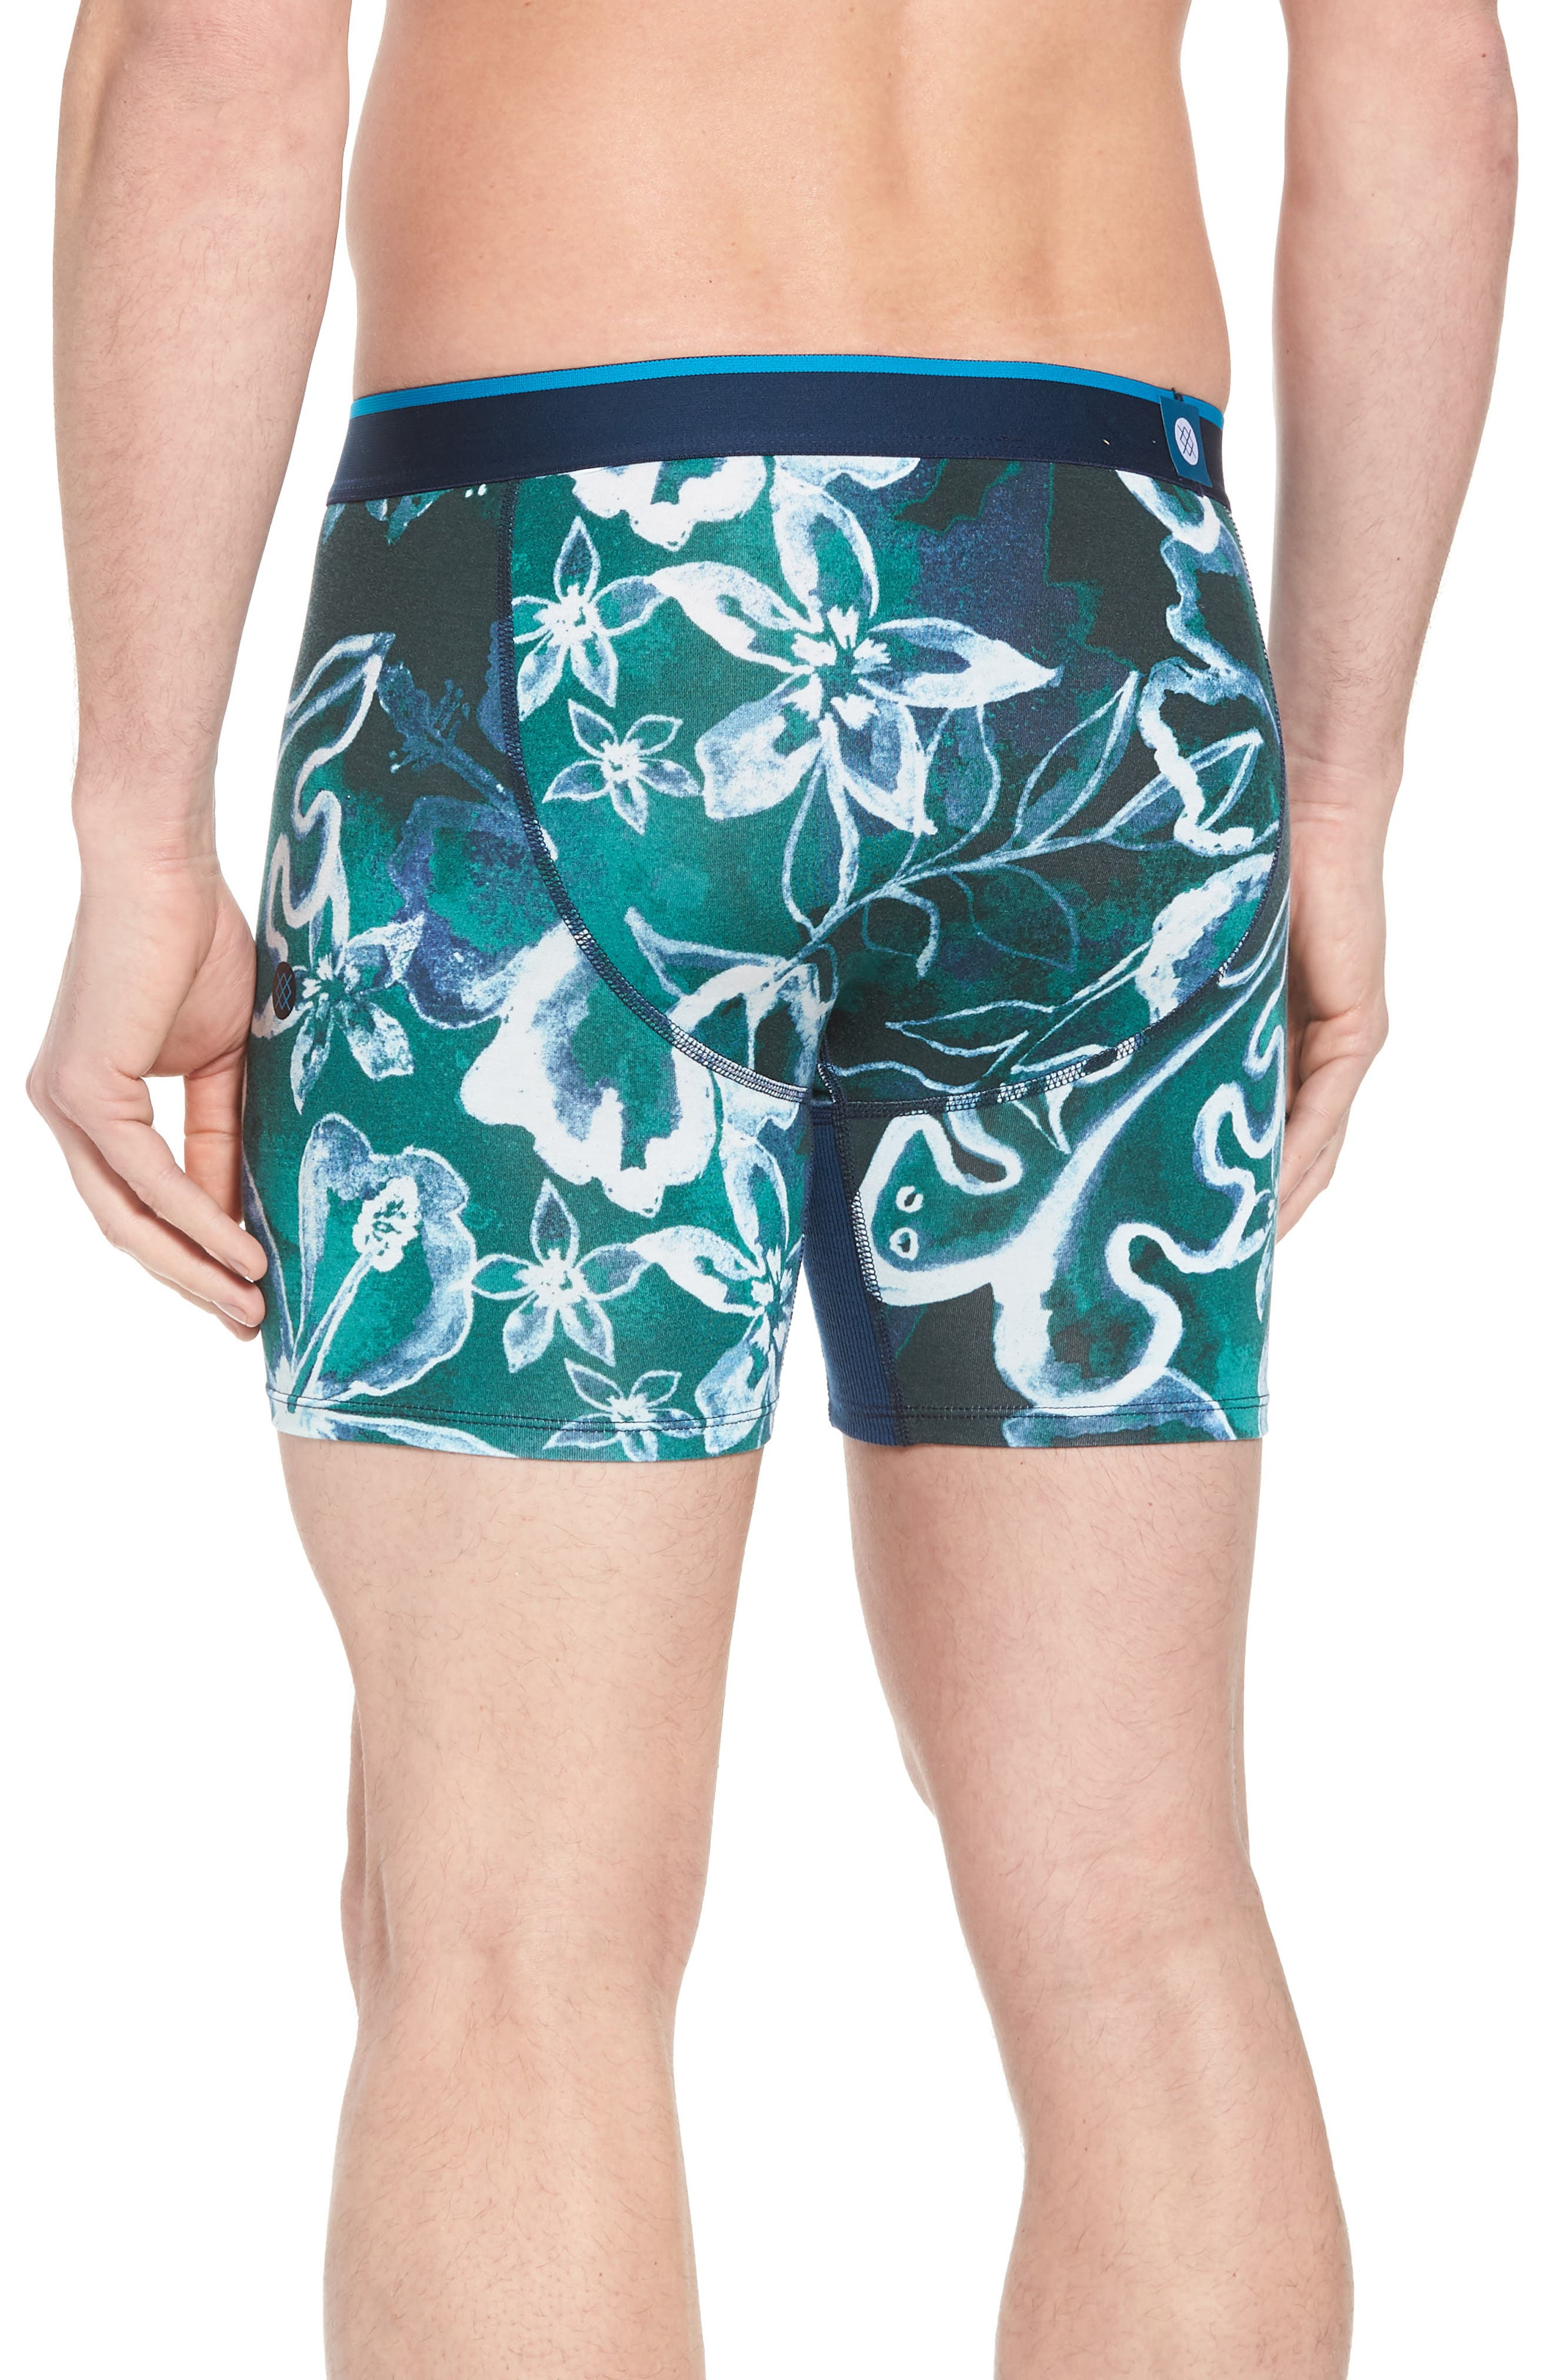 Oxidized Floral Boxer Briefs,                             Alternate thumbnail 4, color,                             Green